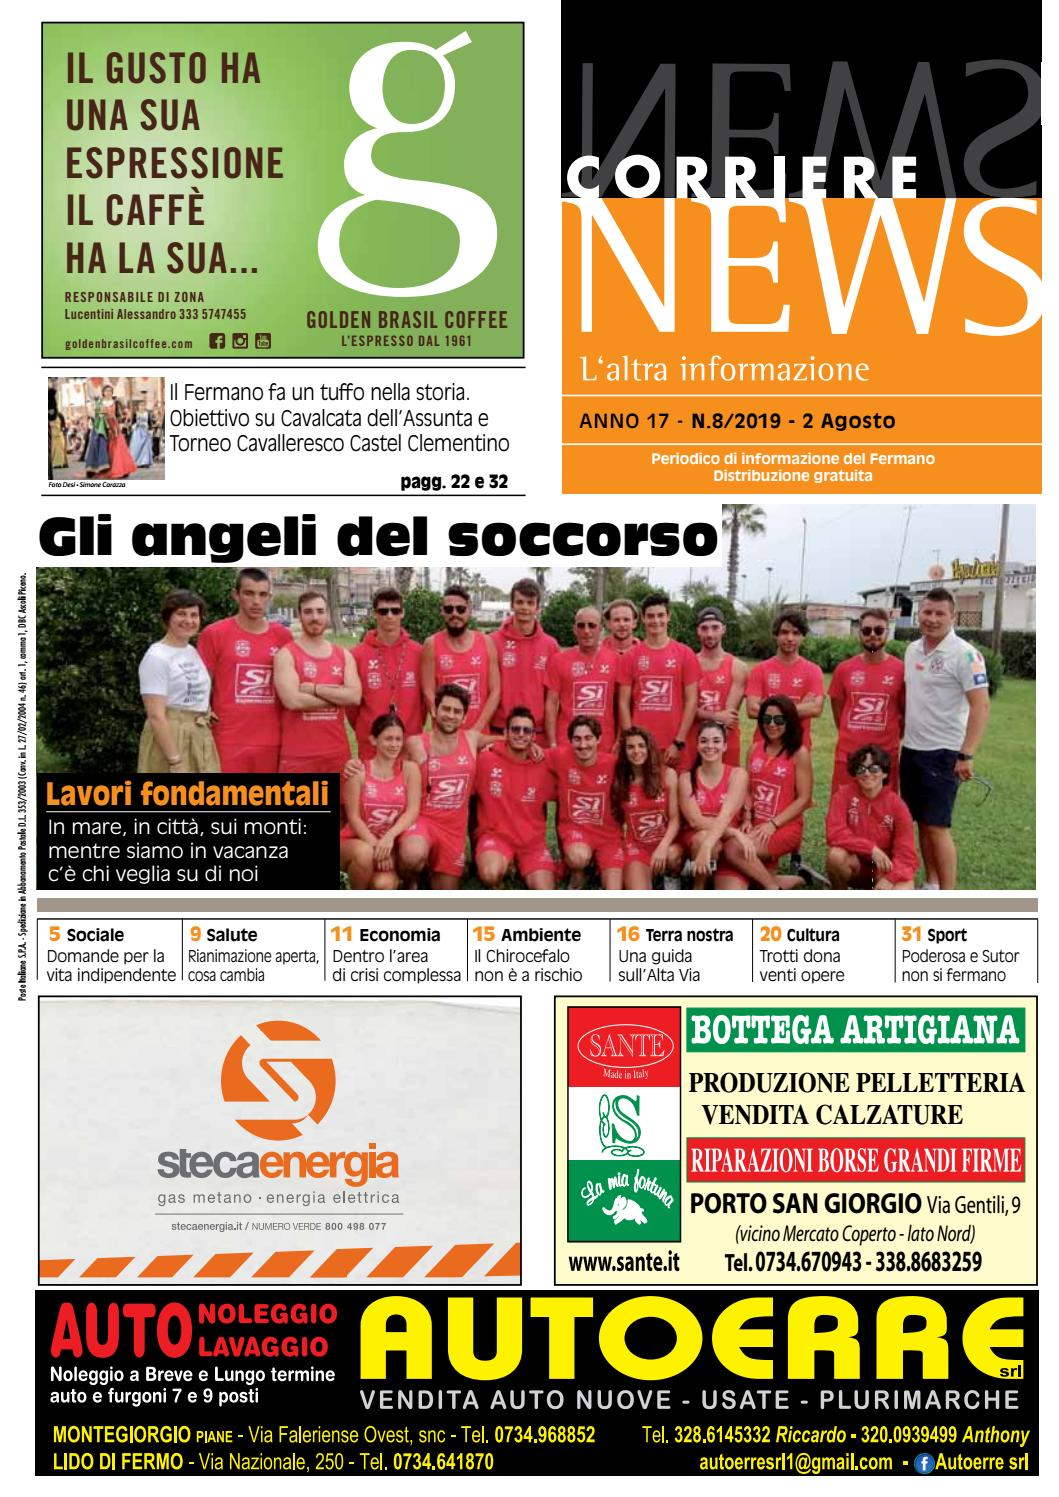 CORRIERE NEWS AGOSTO 2019 by Corriere News issuu